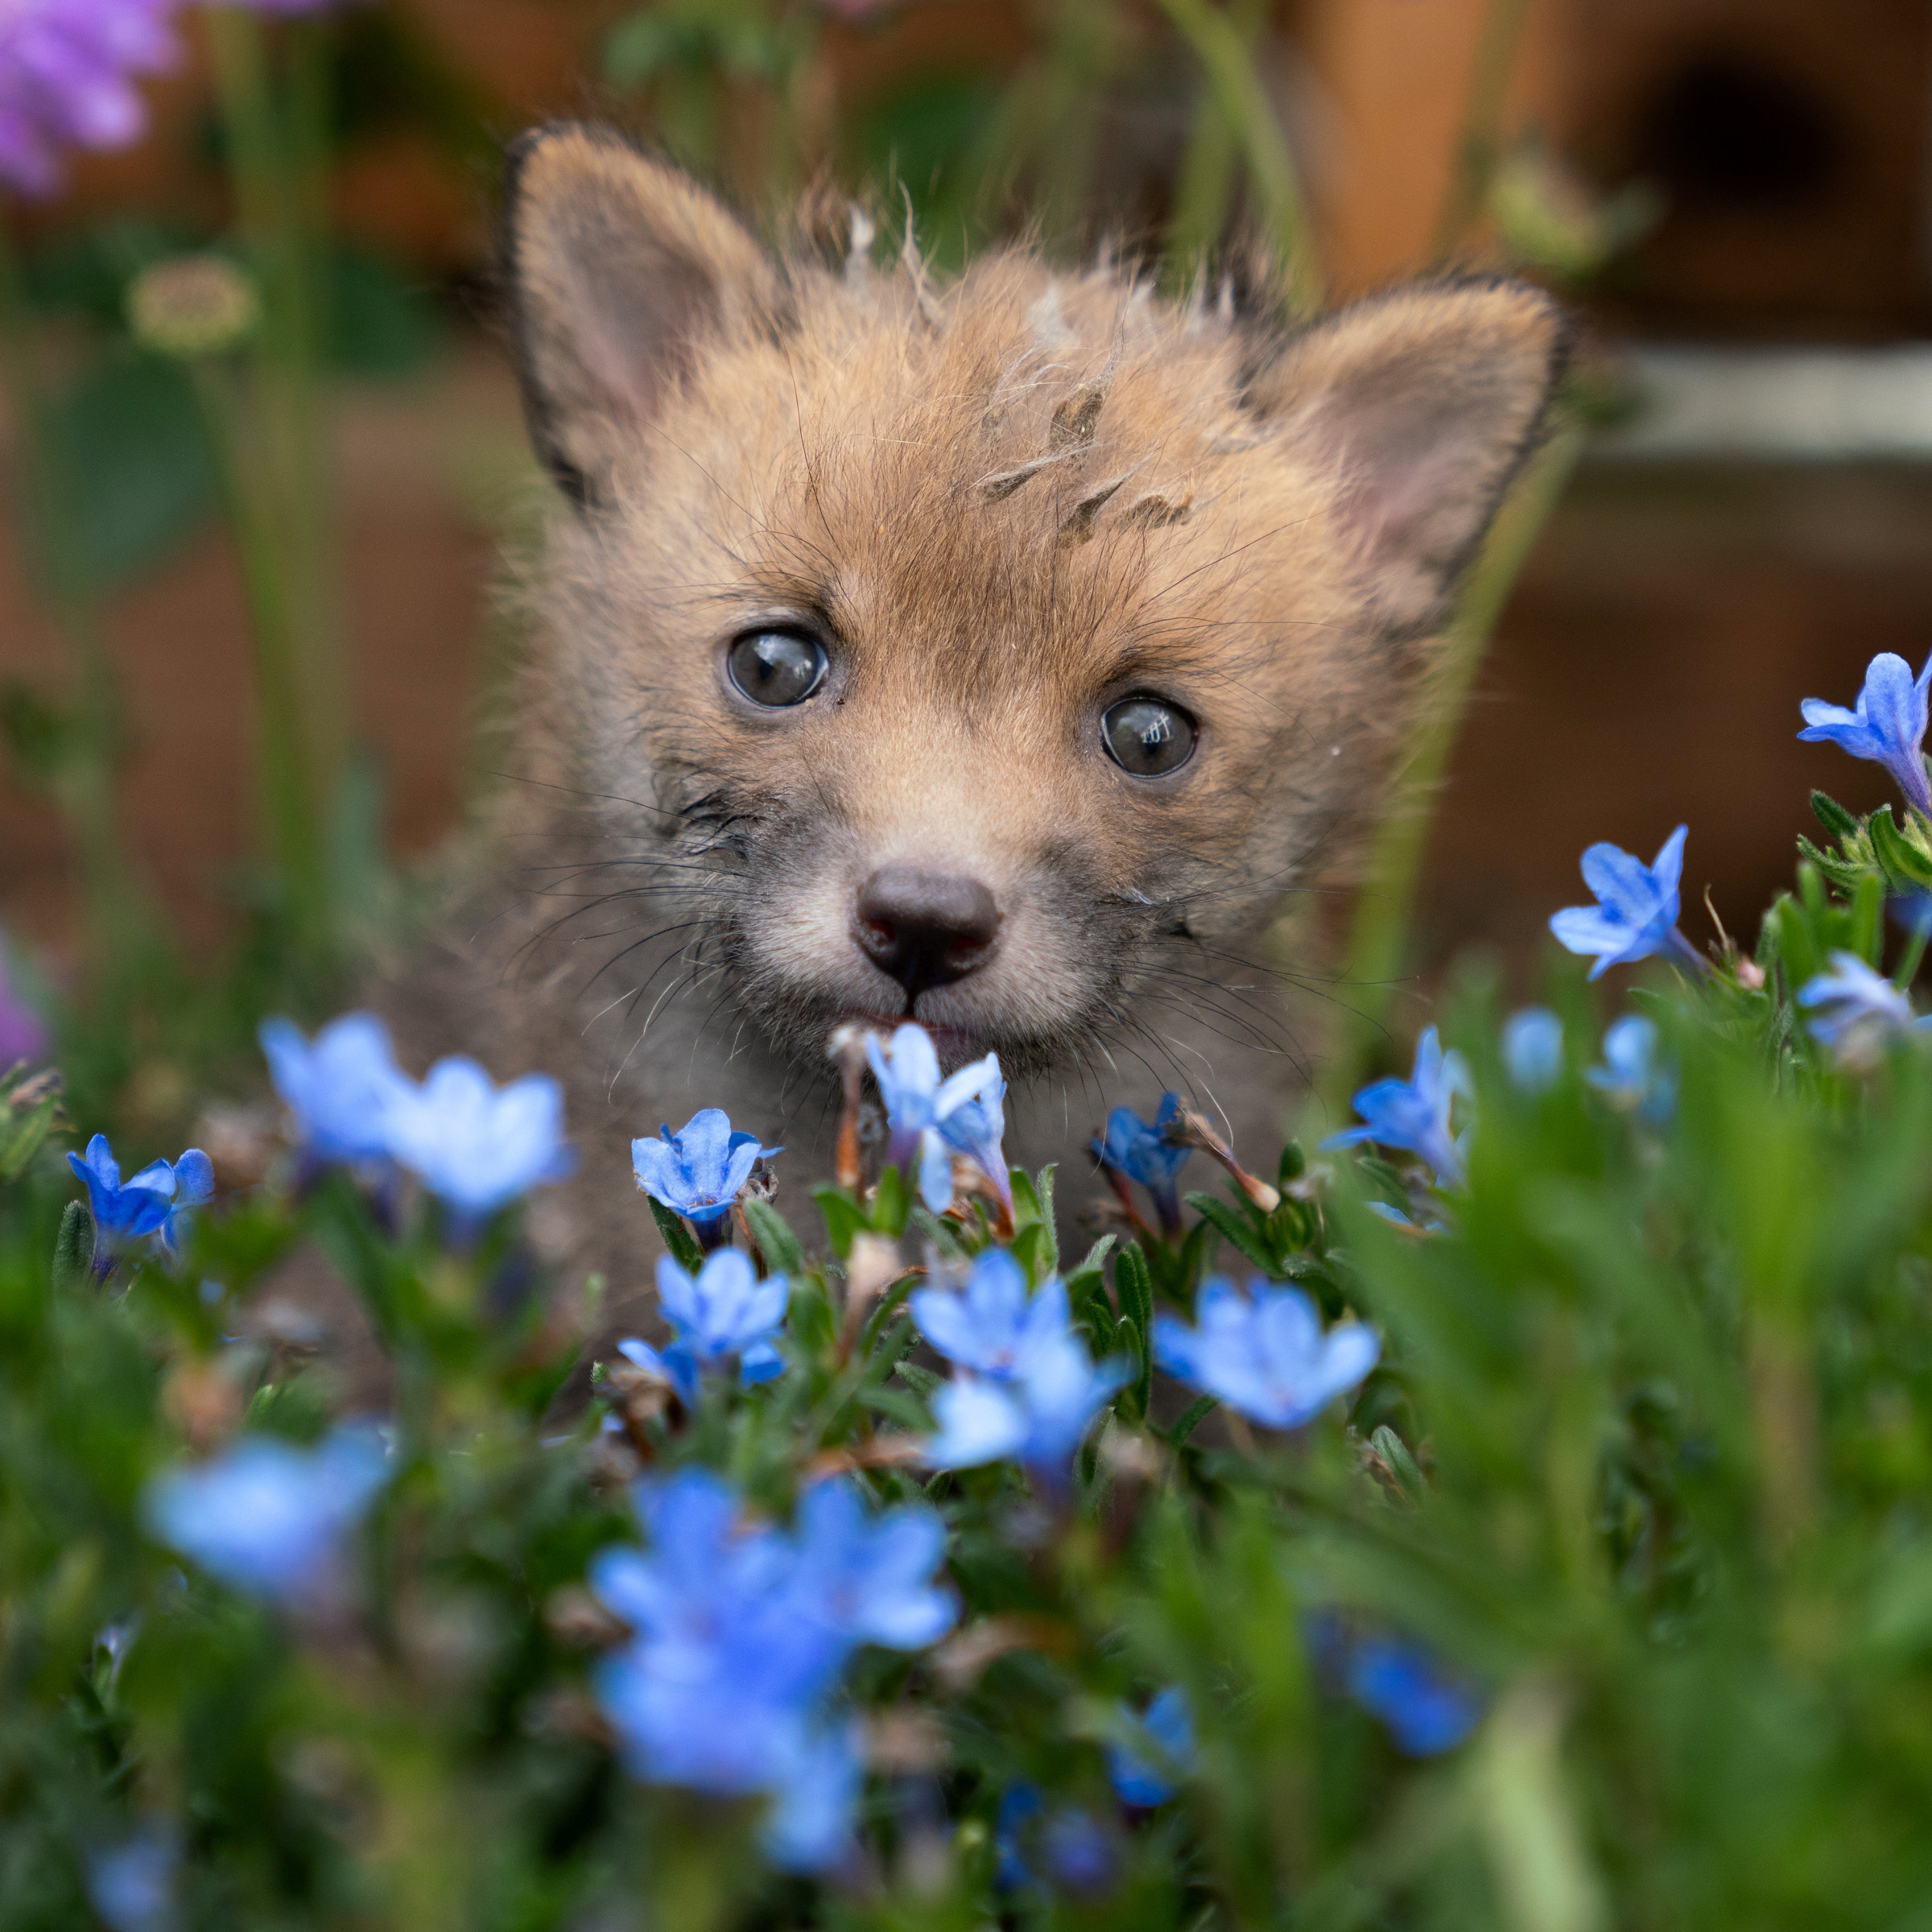 The foxes initially had to be fed milk every 20 minutes. Credit: SWNS